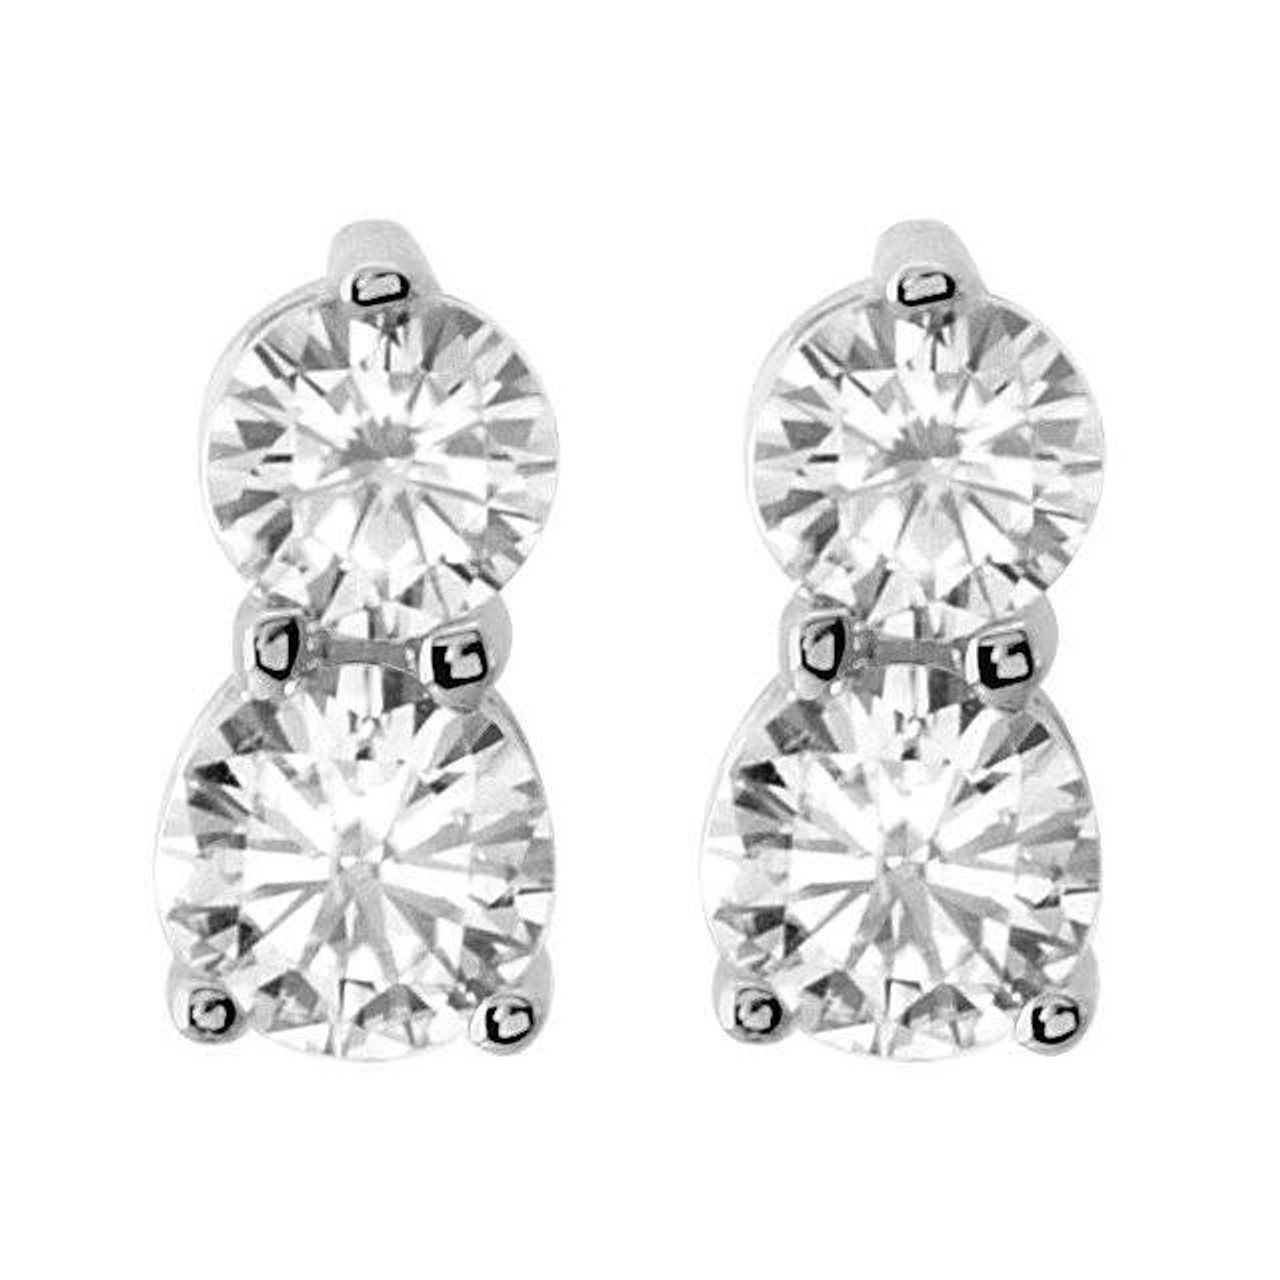 60ct Forever Us Two Stone Diamond Studs Womens Earrings 14k White Gold G H I1